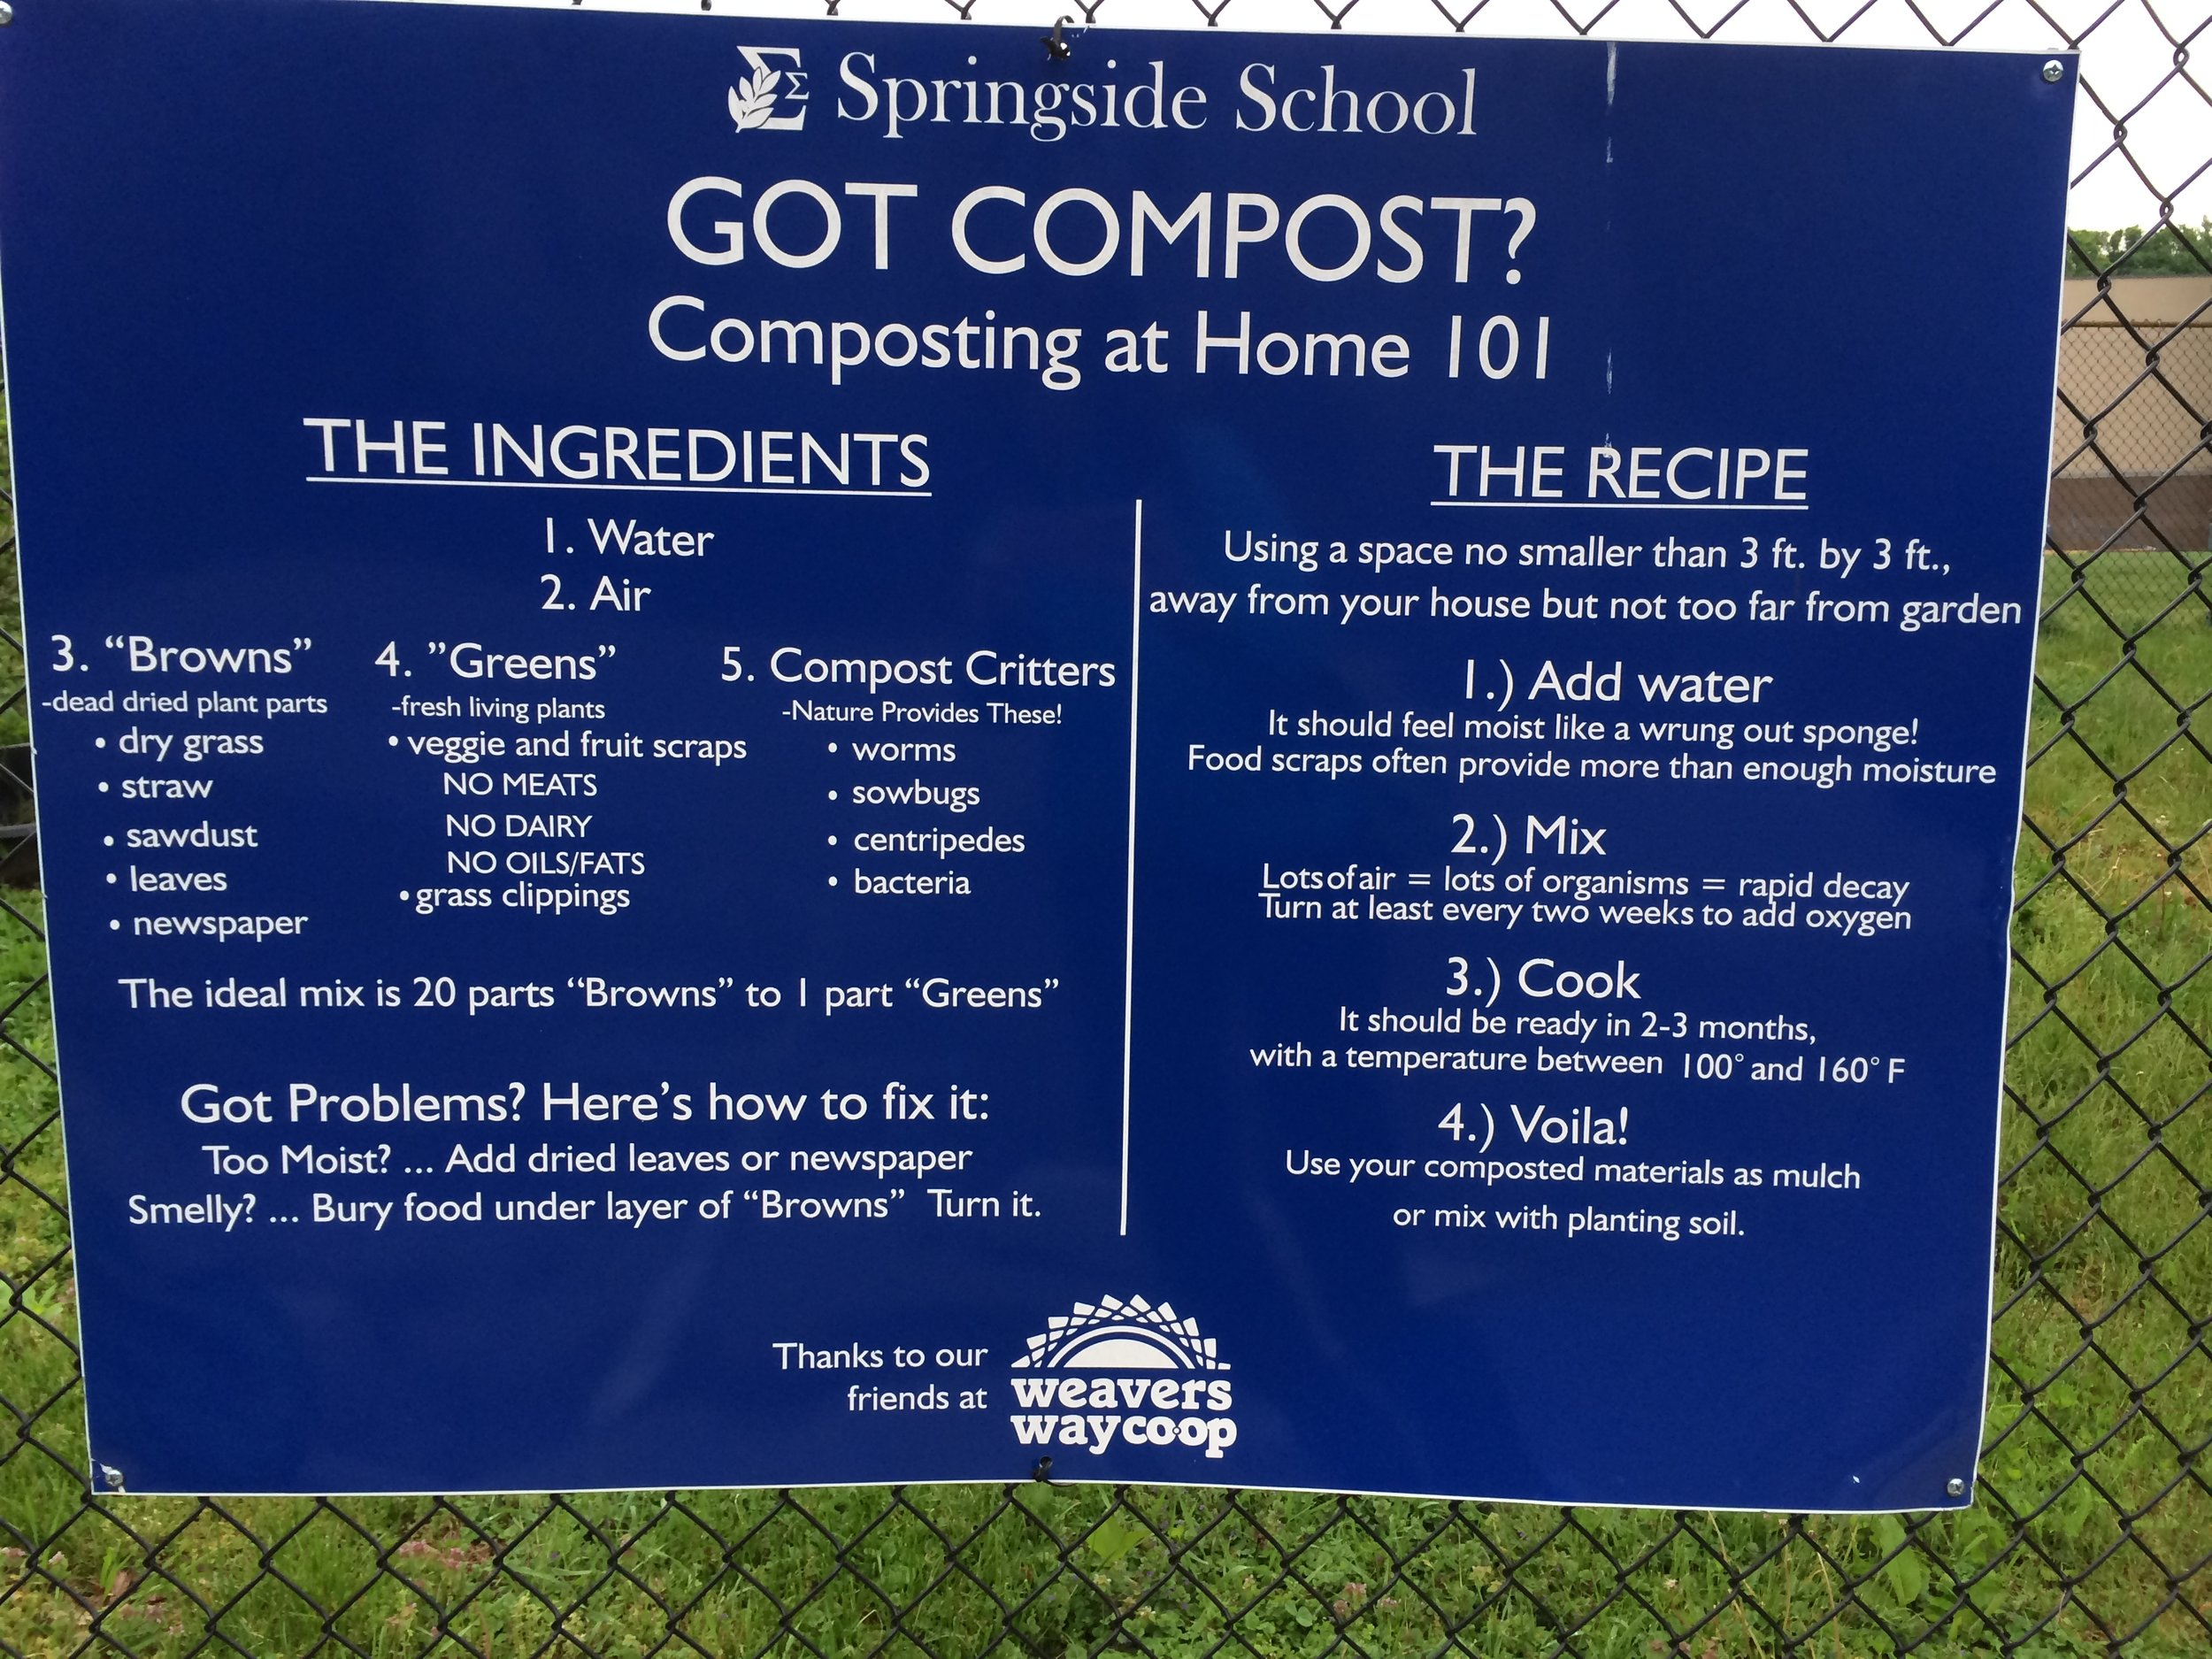 Signage outside the school's garden explains the nuts and bolts of composting to the school community and visitors.